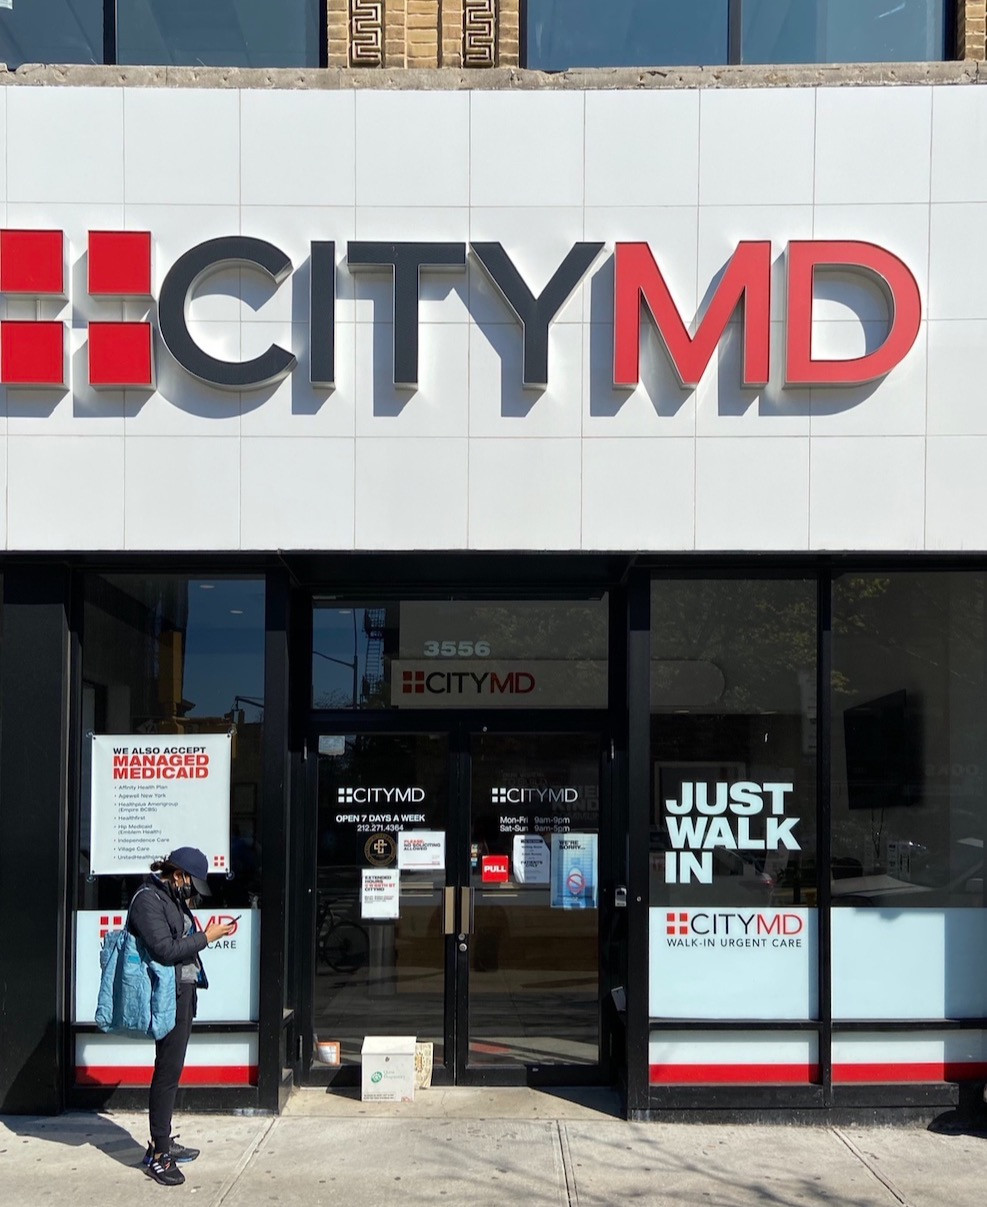 City MD now offers free COVID-19 diagnostic testing for those without insurance